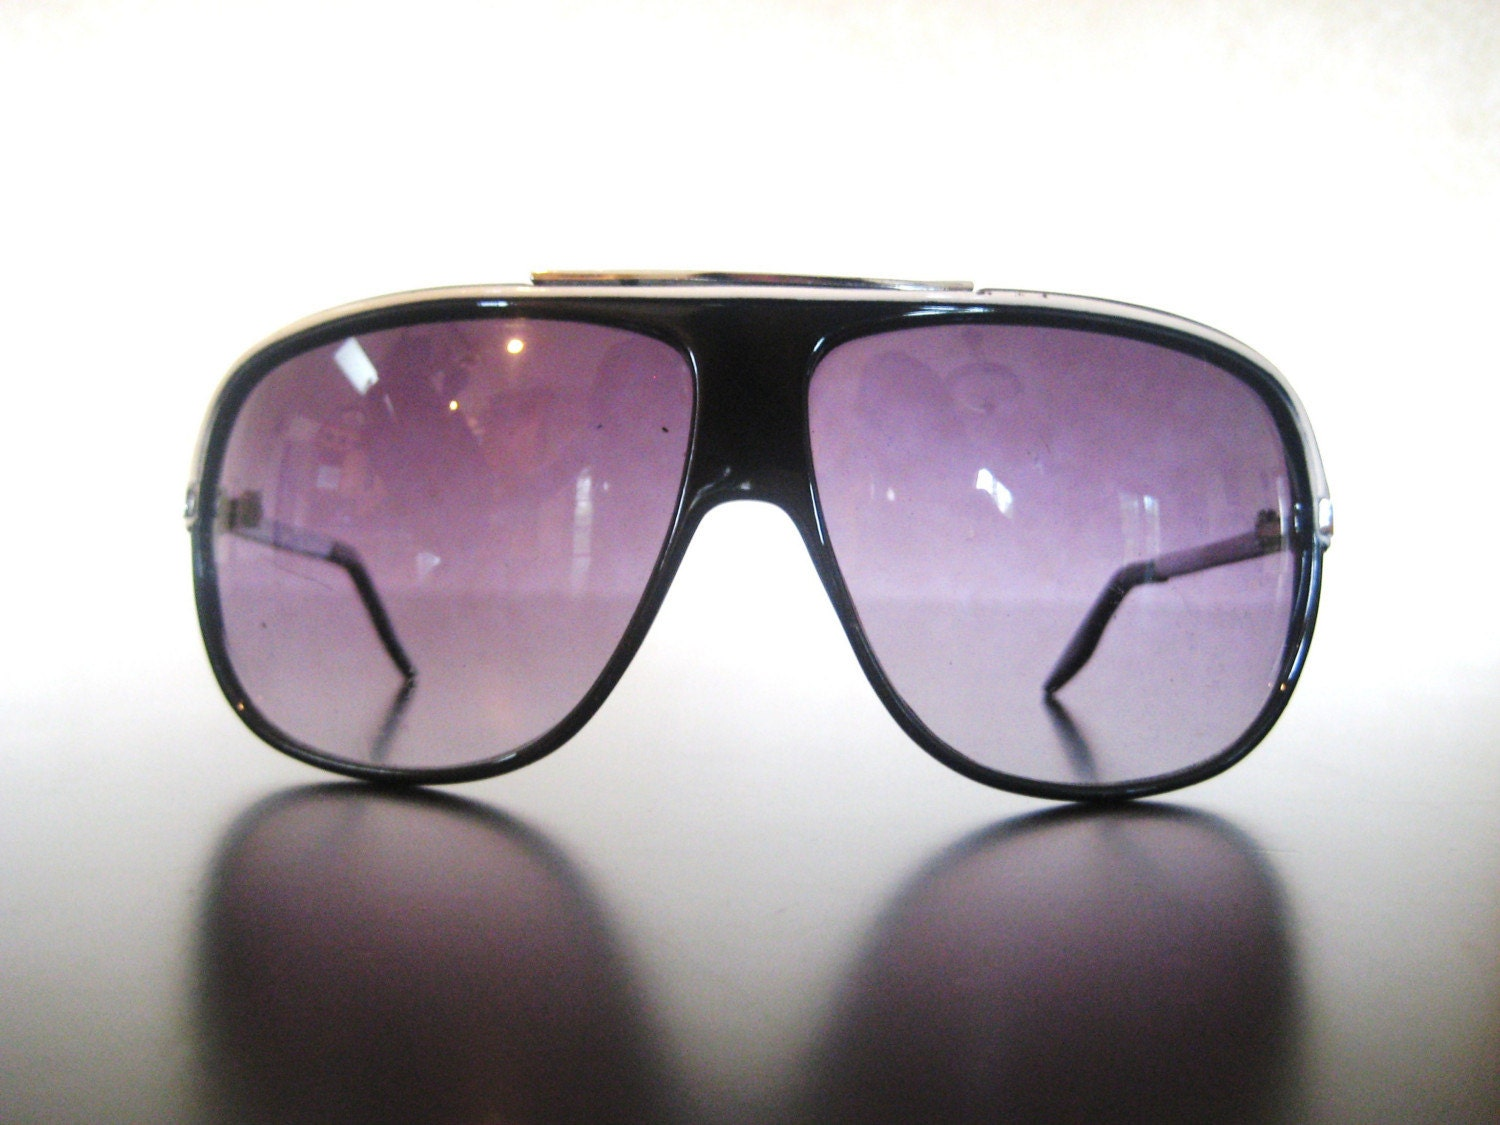 80's Vintage Black and White Plastic Frame Aviator Sunglasses with Silver Metal Details